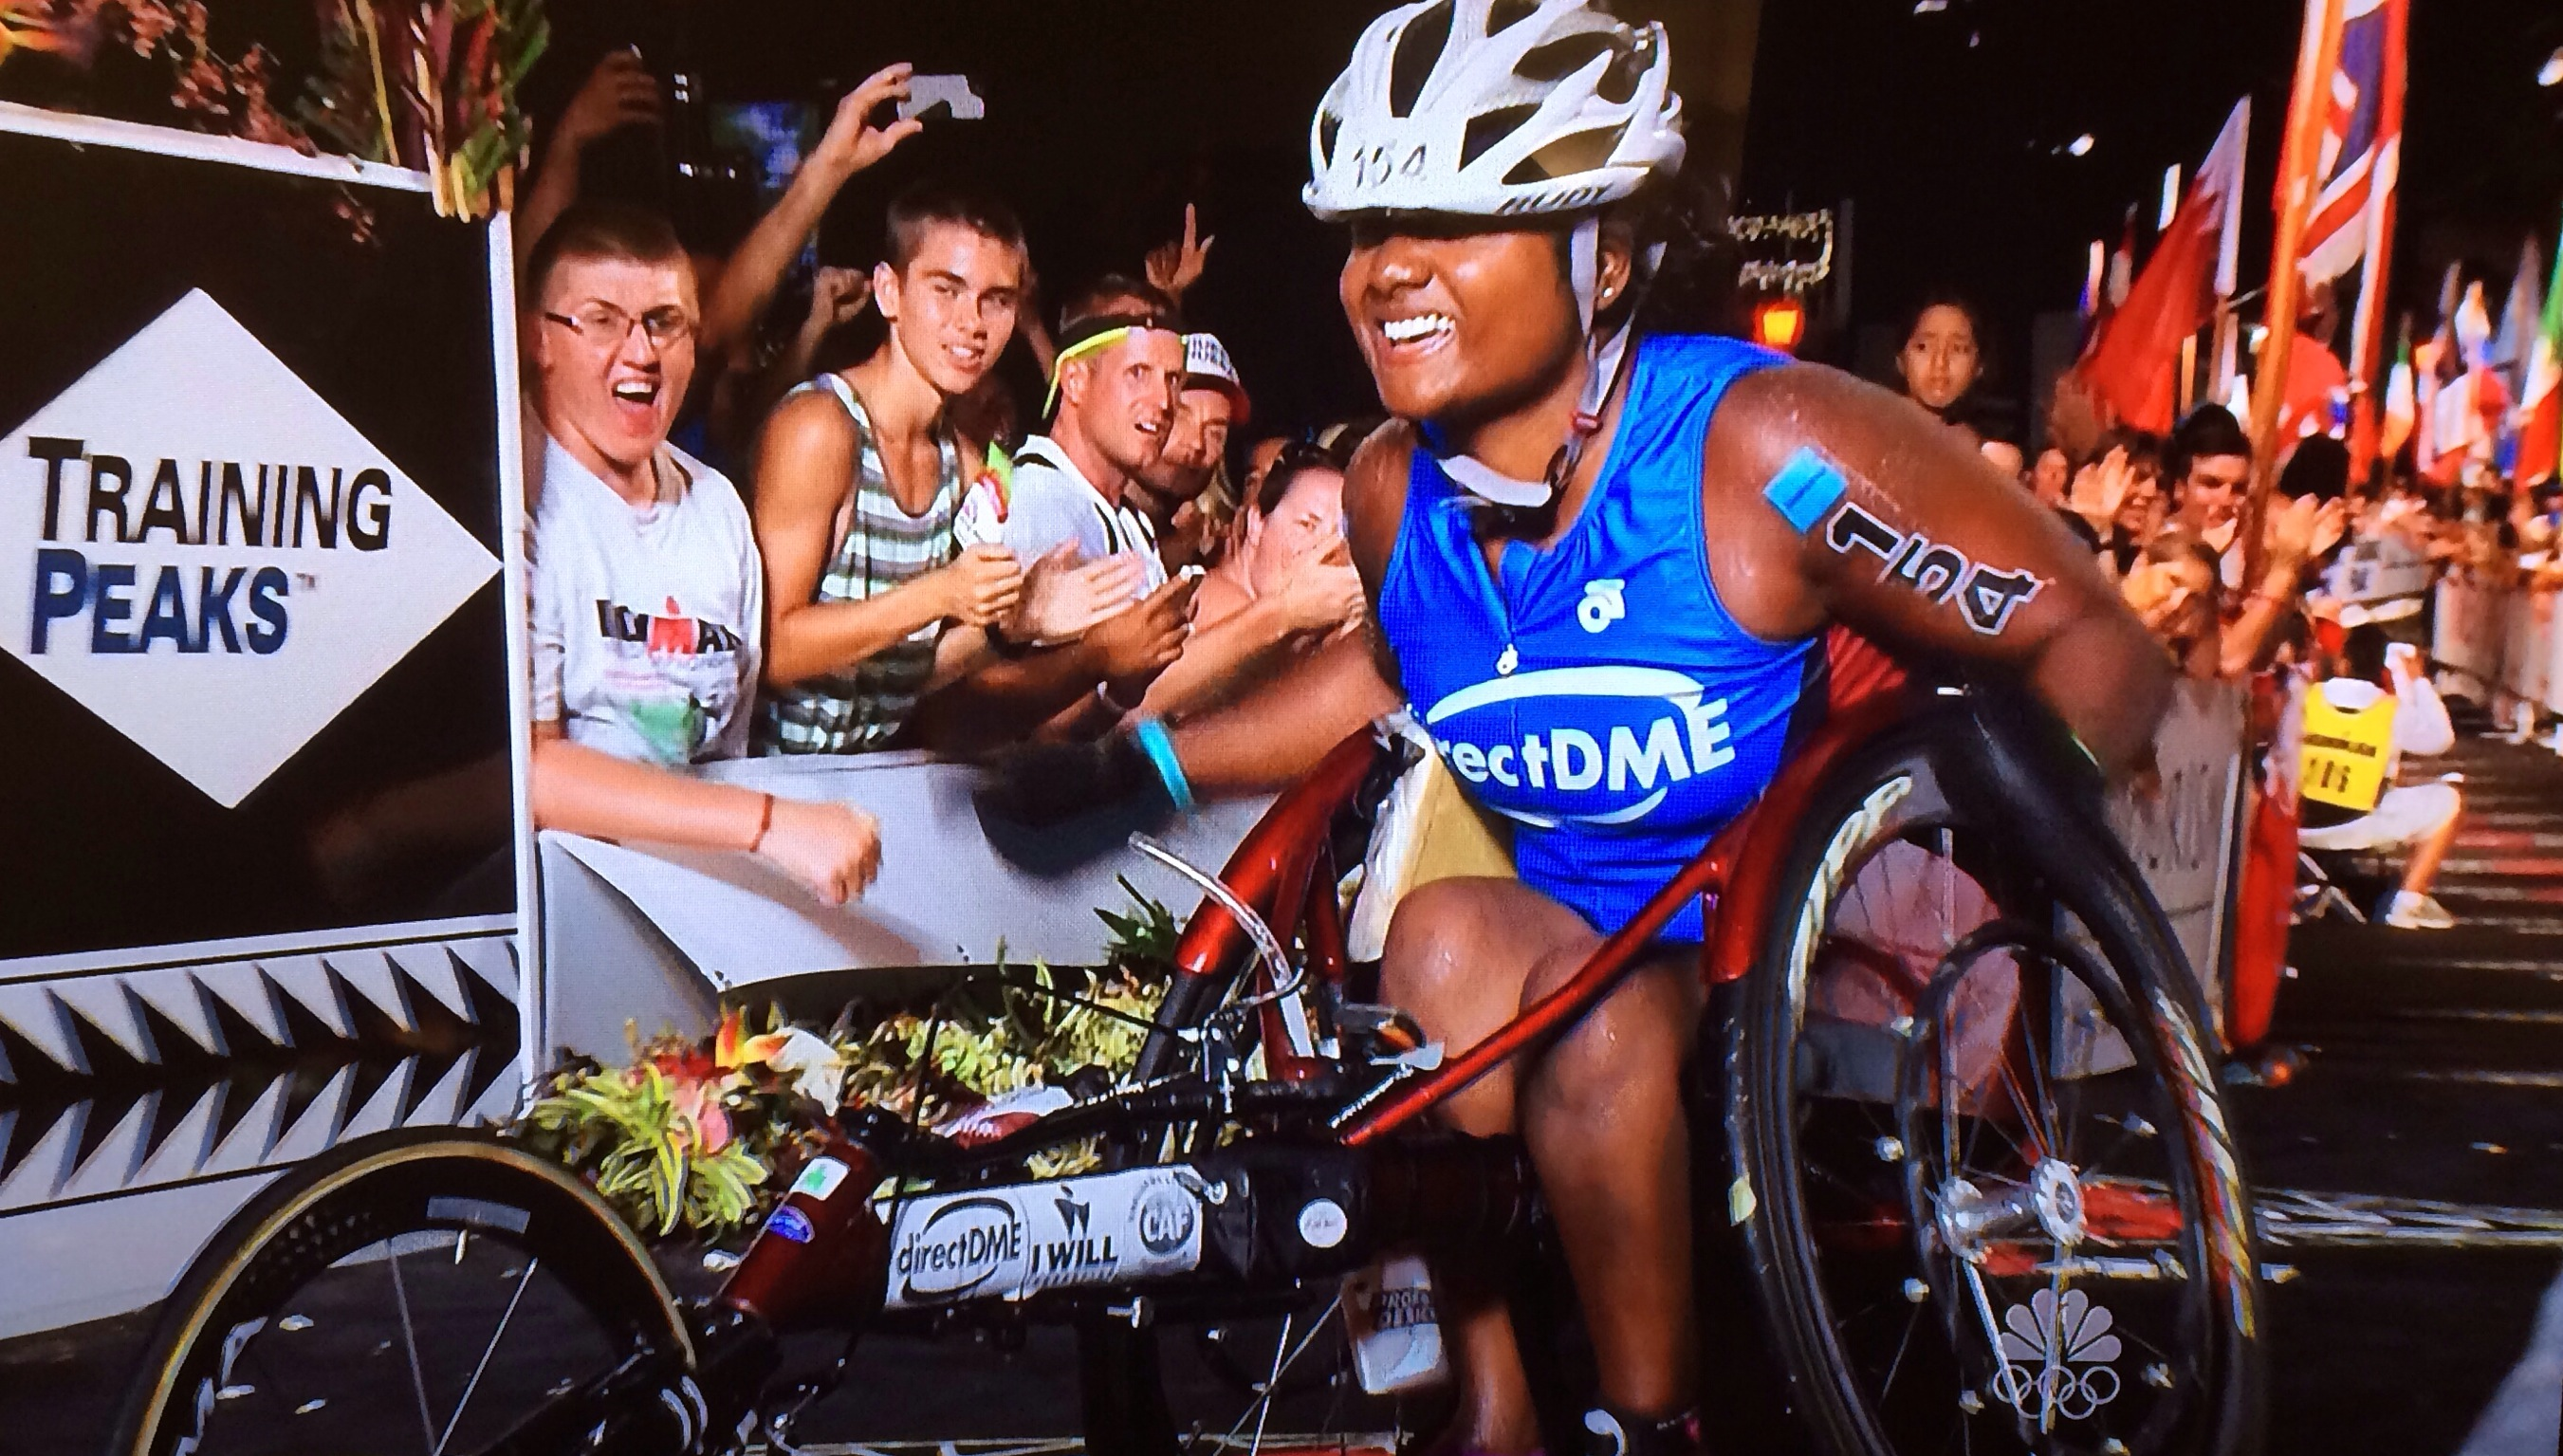 Minda Dentler - Ironman Finish on NBC